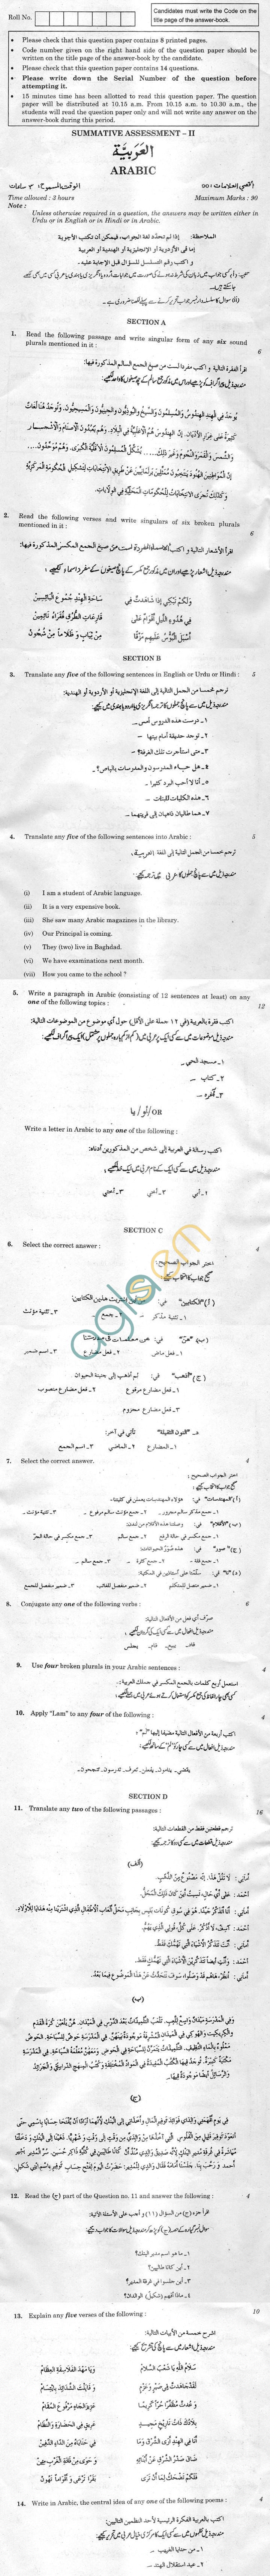 CBSE Compartment Exam 2013 Class X Question Paper - Arabic